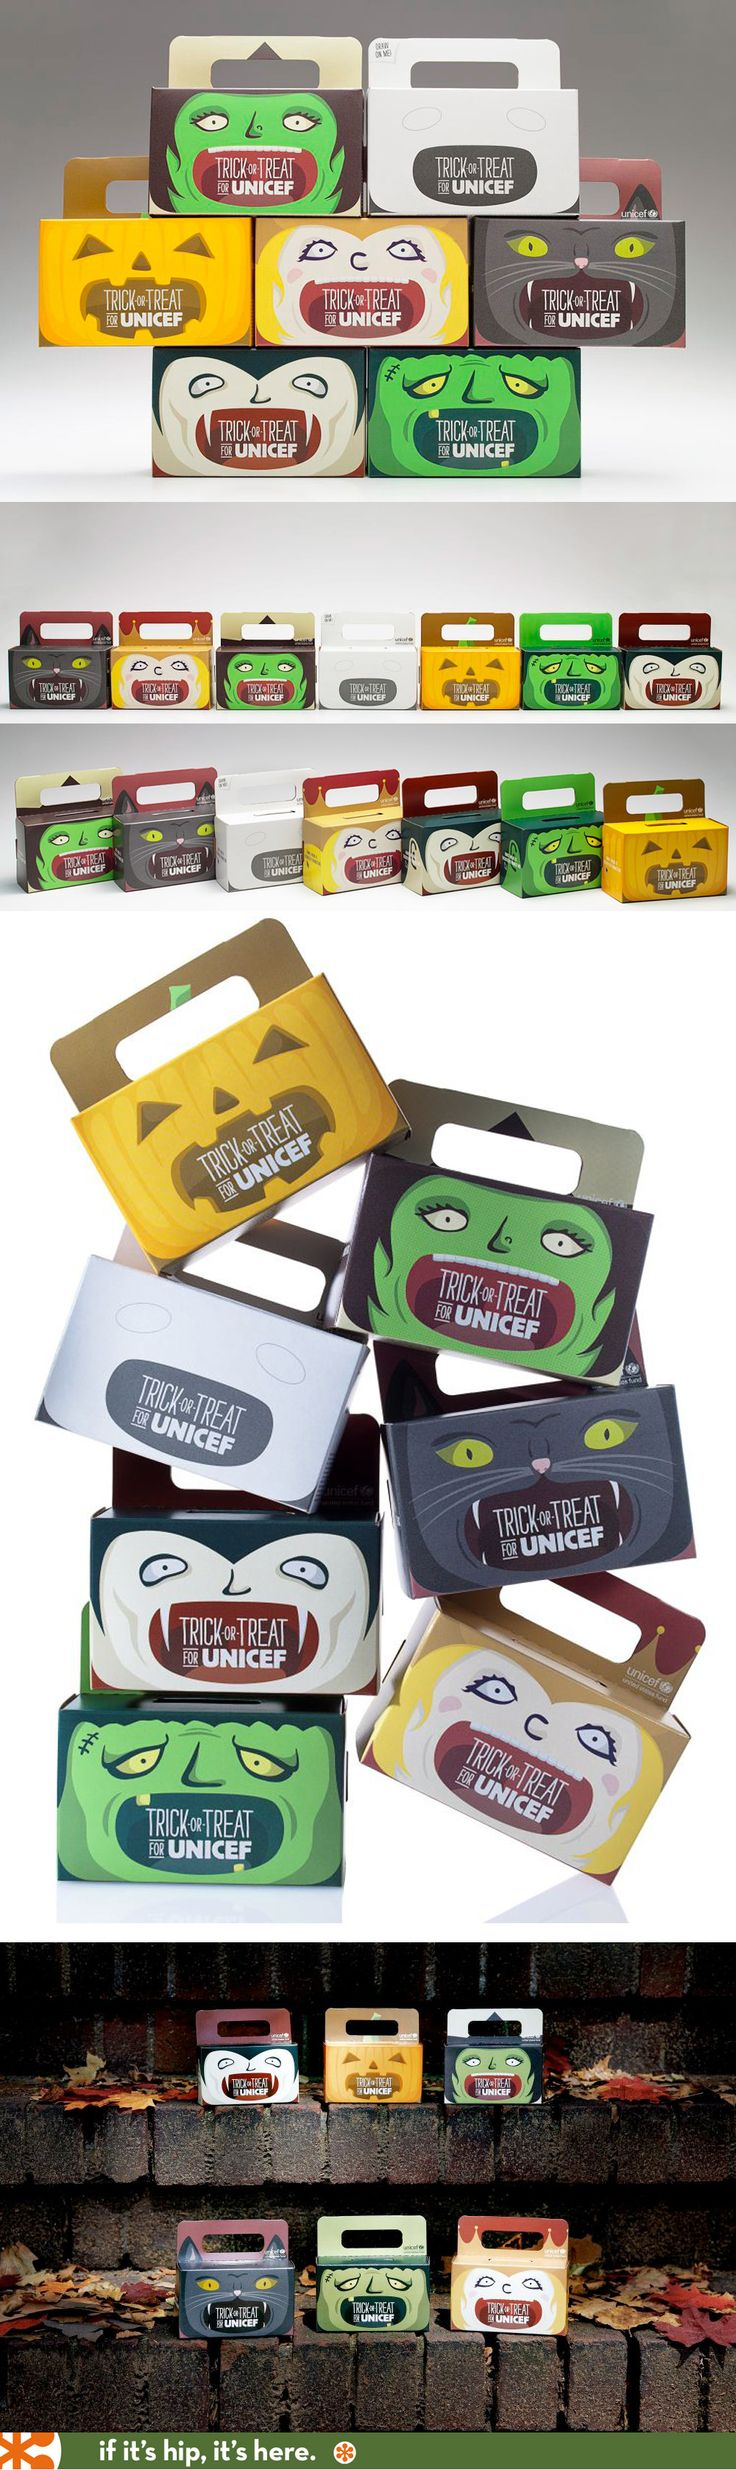 These six Unicef Trick or Treat character boxes were designed in 2012. I love them, but sadly they've changed them to Peanuts boxes this year to promote the Peanuts movie.